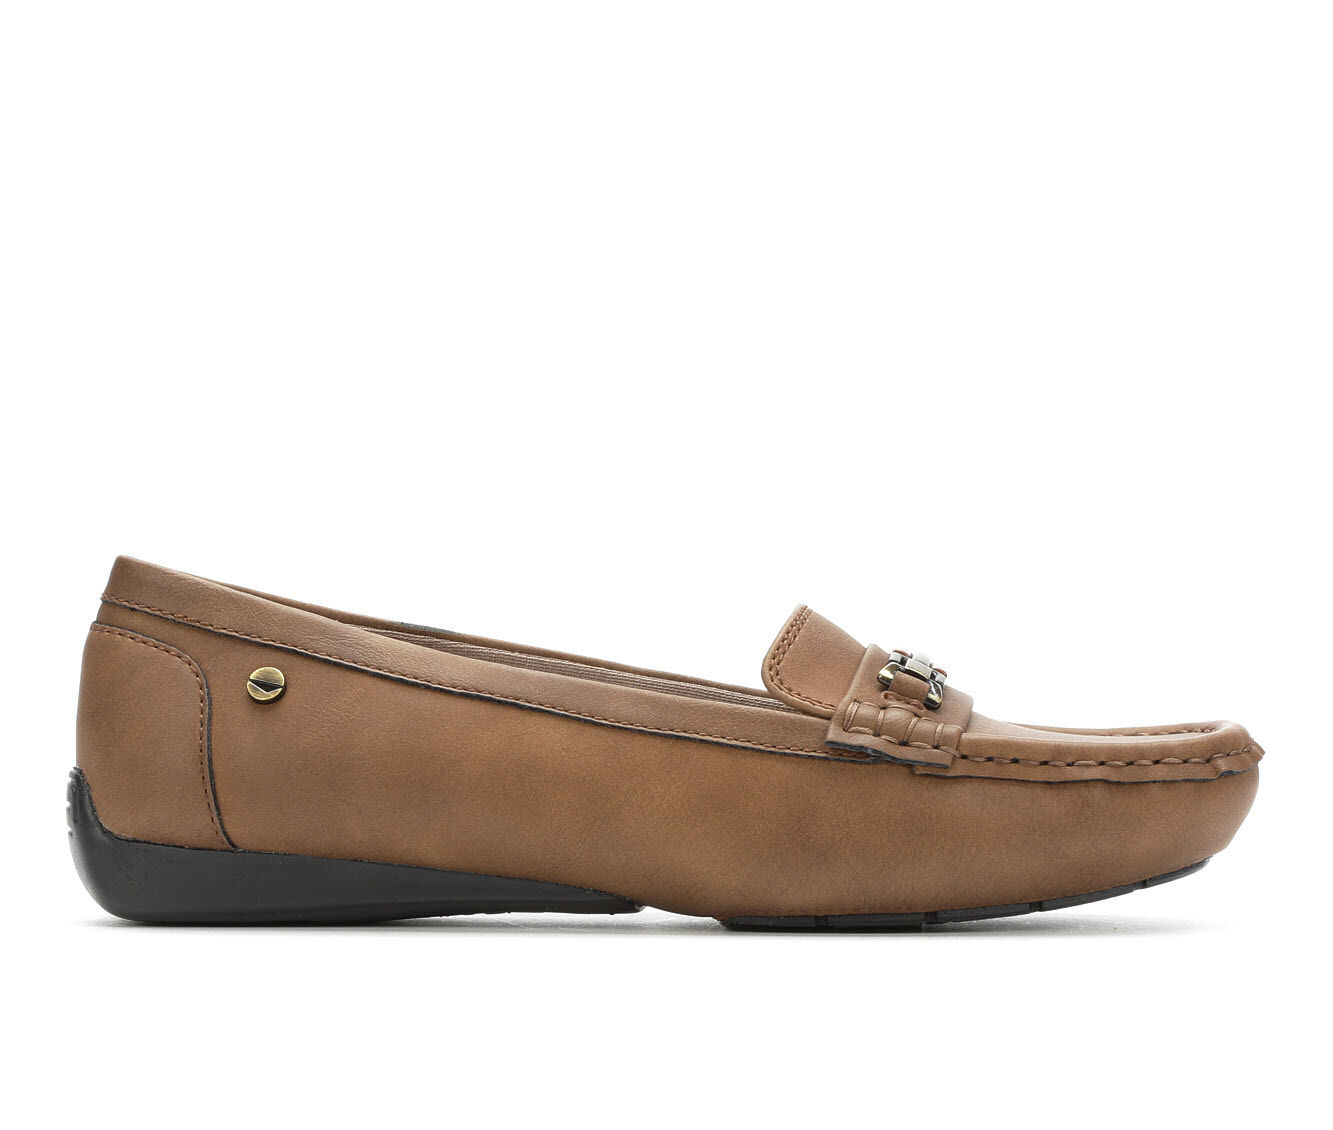 shop authentic new arrivals Women's LifeStride Vanity Loafers Tan Oiled